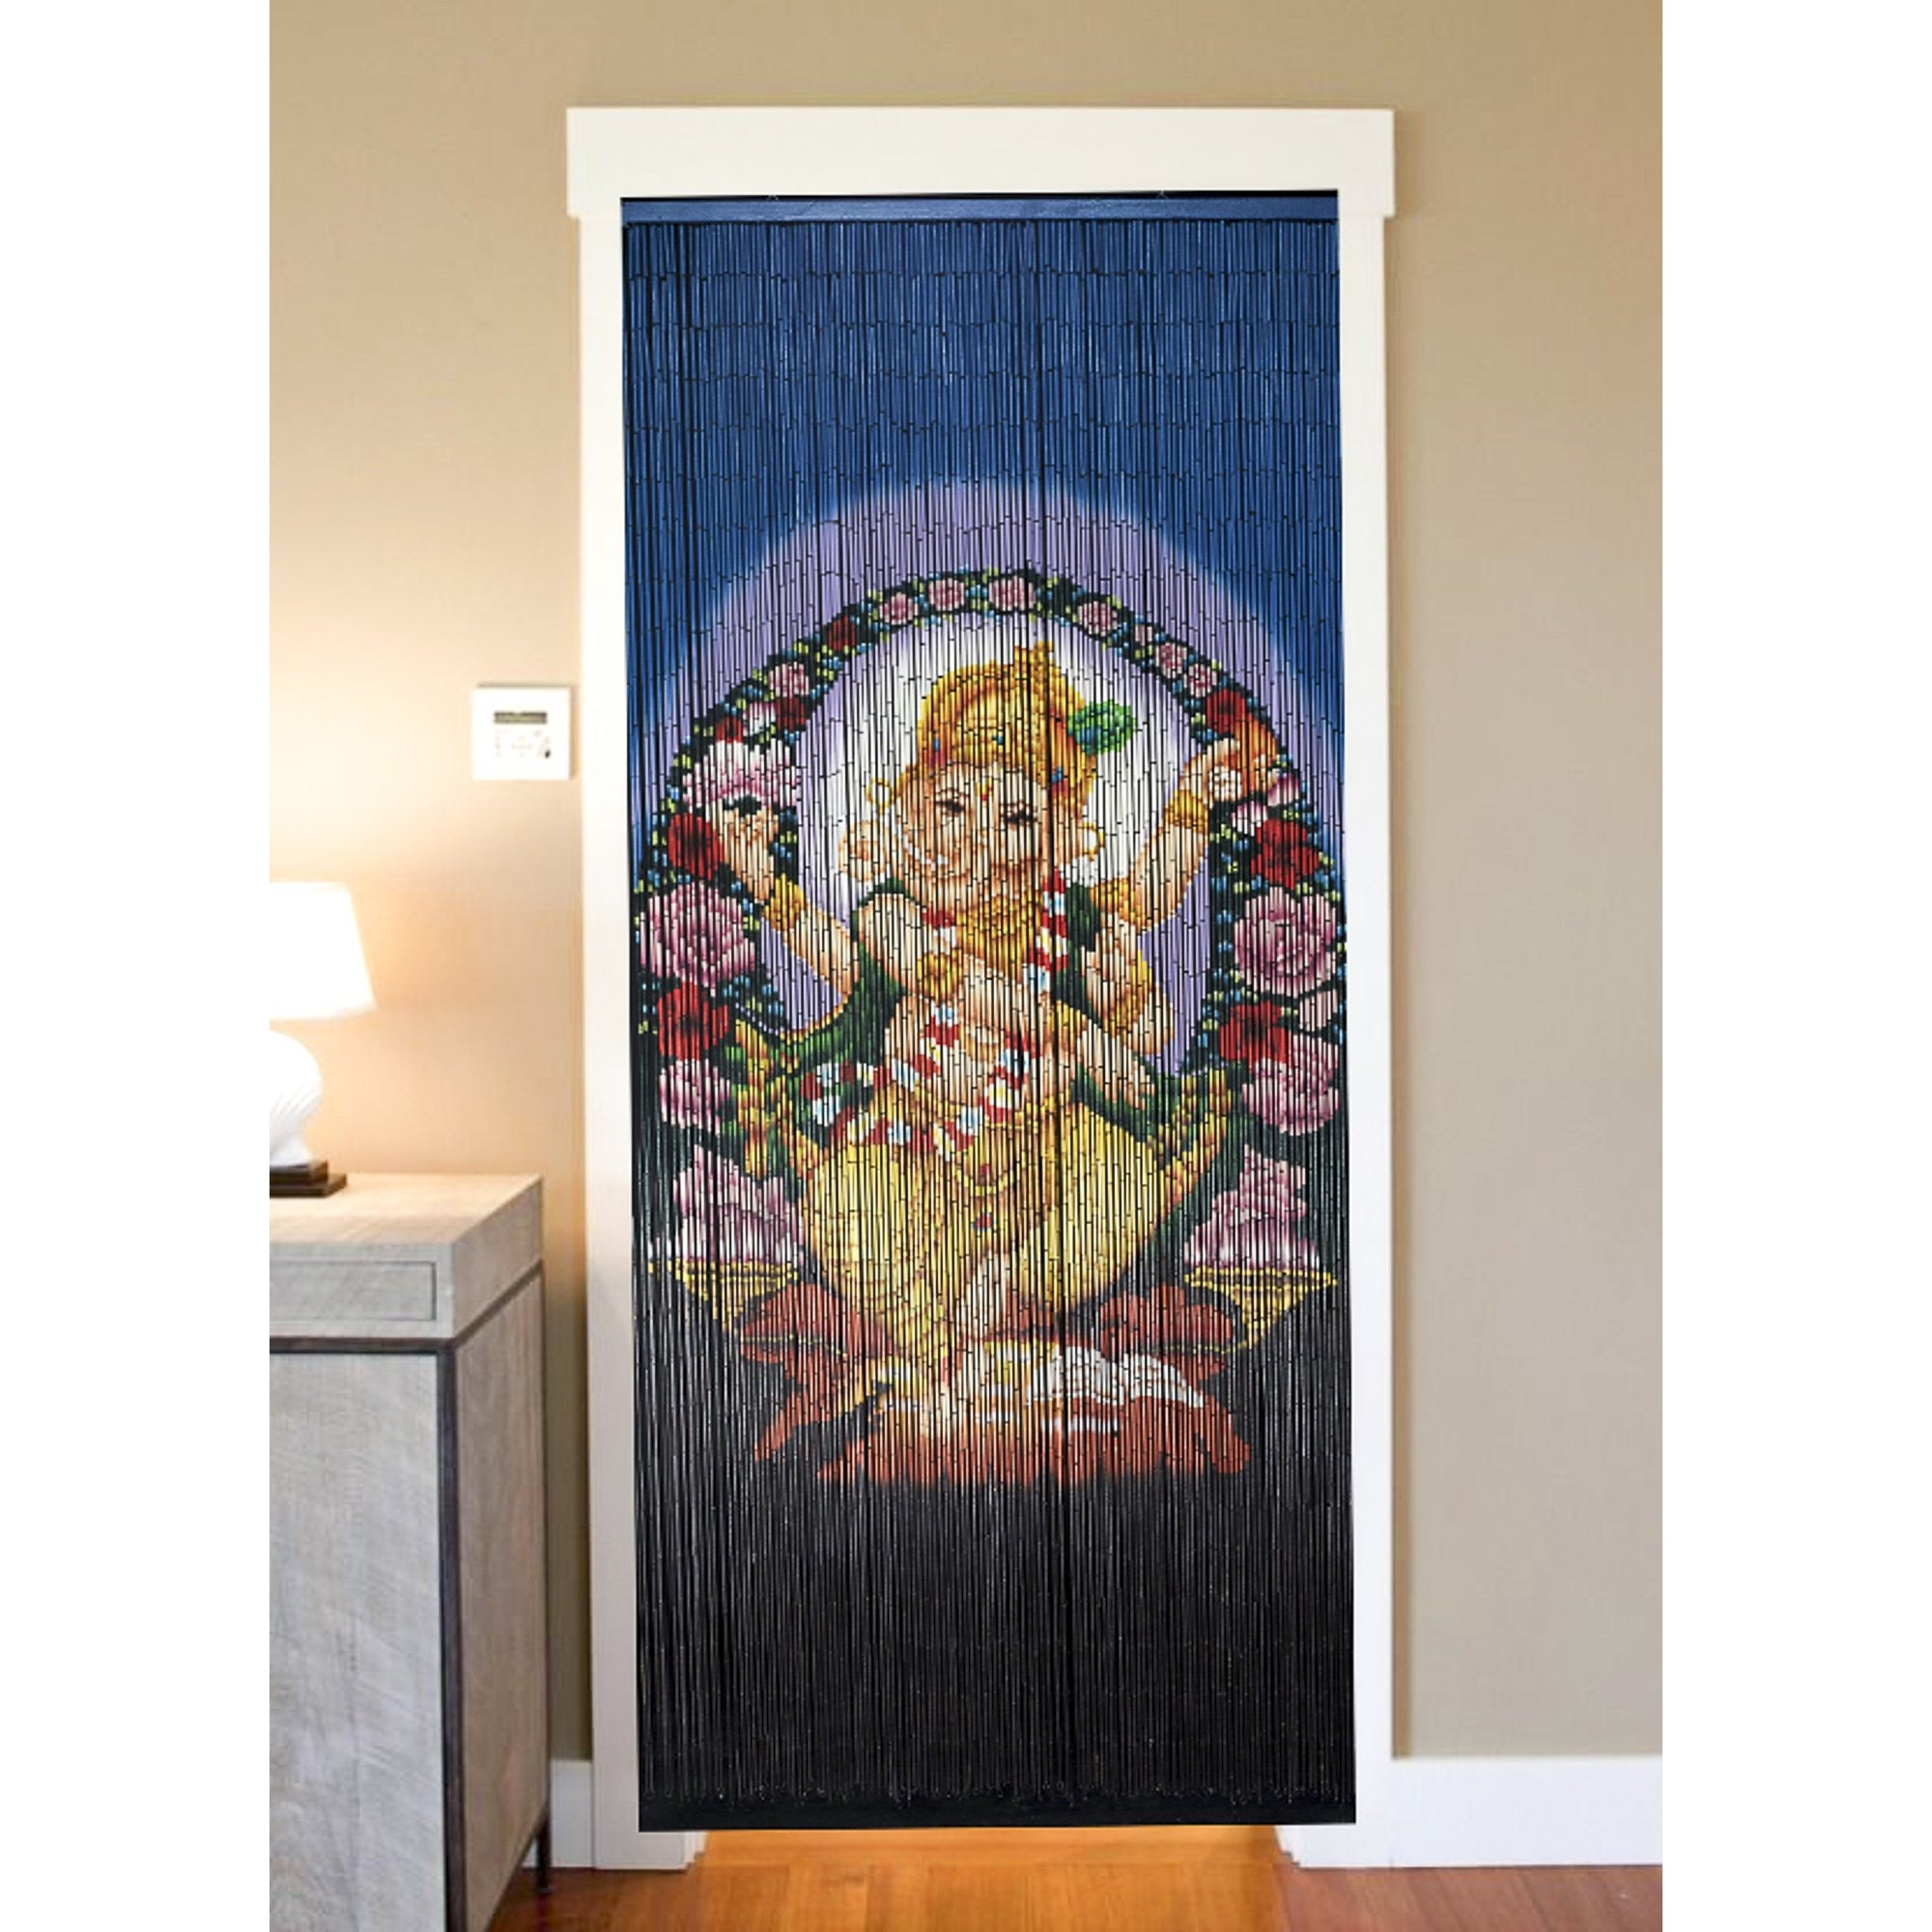 Unique Bamboo Beaded Curtains For Doorways Windows And Walls Tagged Bamboo Beaded Curtain Beads Of Paradise